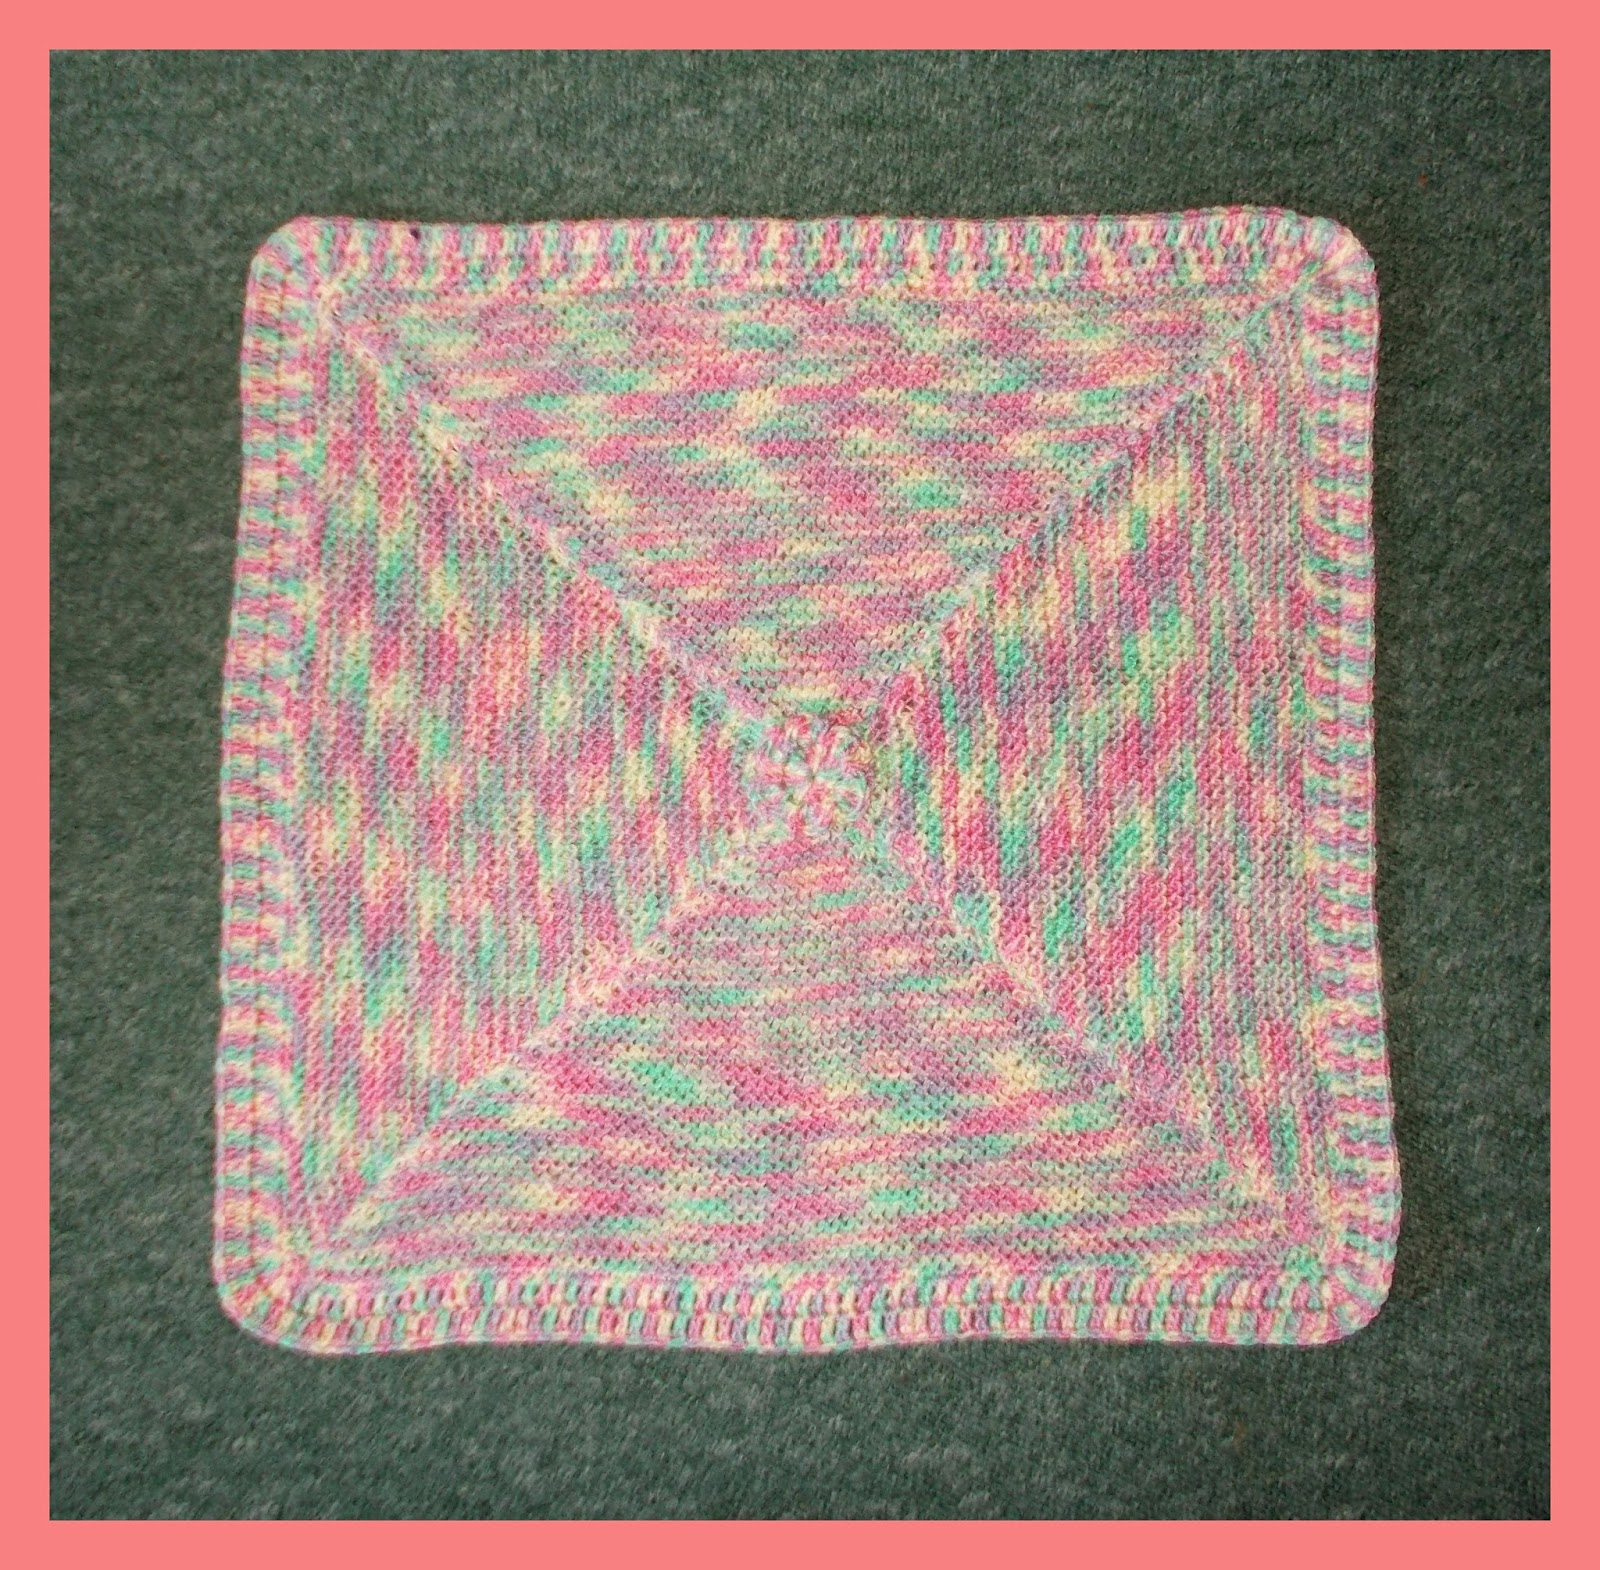 Mariannas lazy daisy days simple garter stitch baby blanket bankloansurffo Image collections